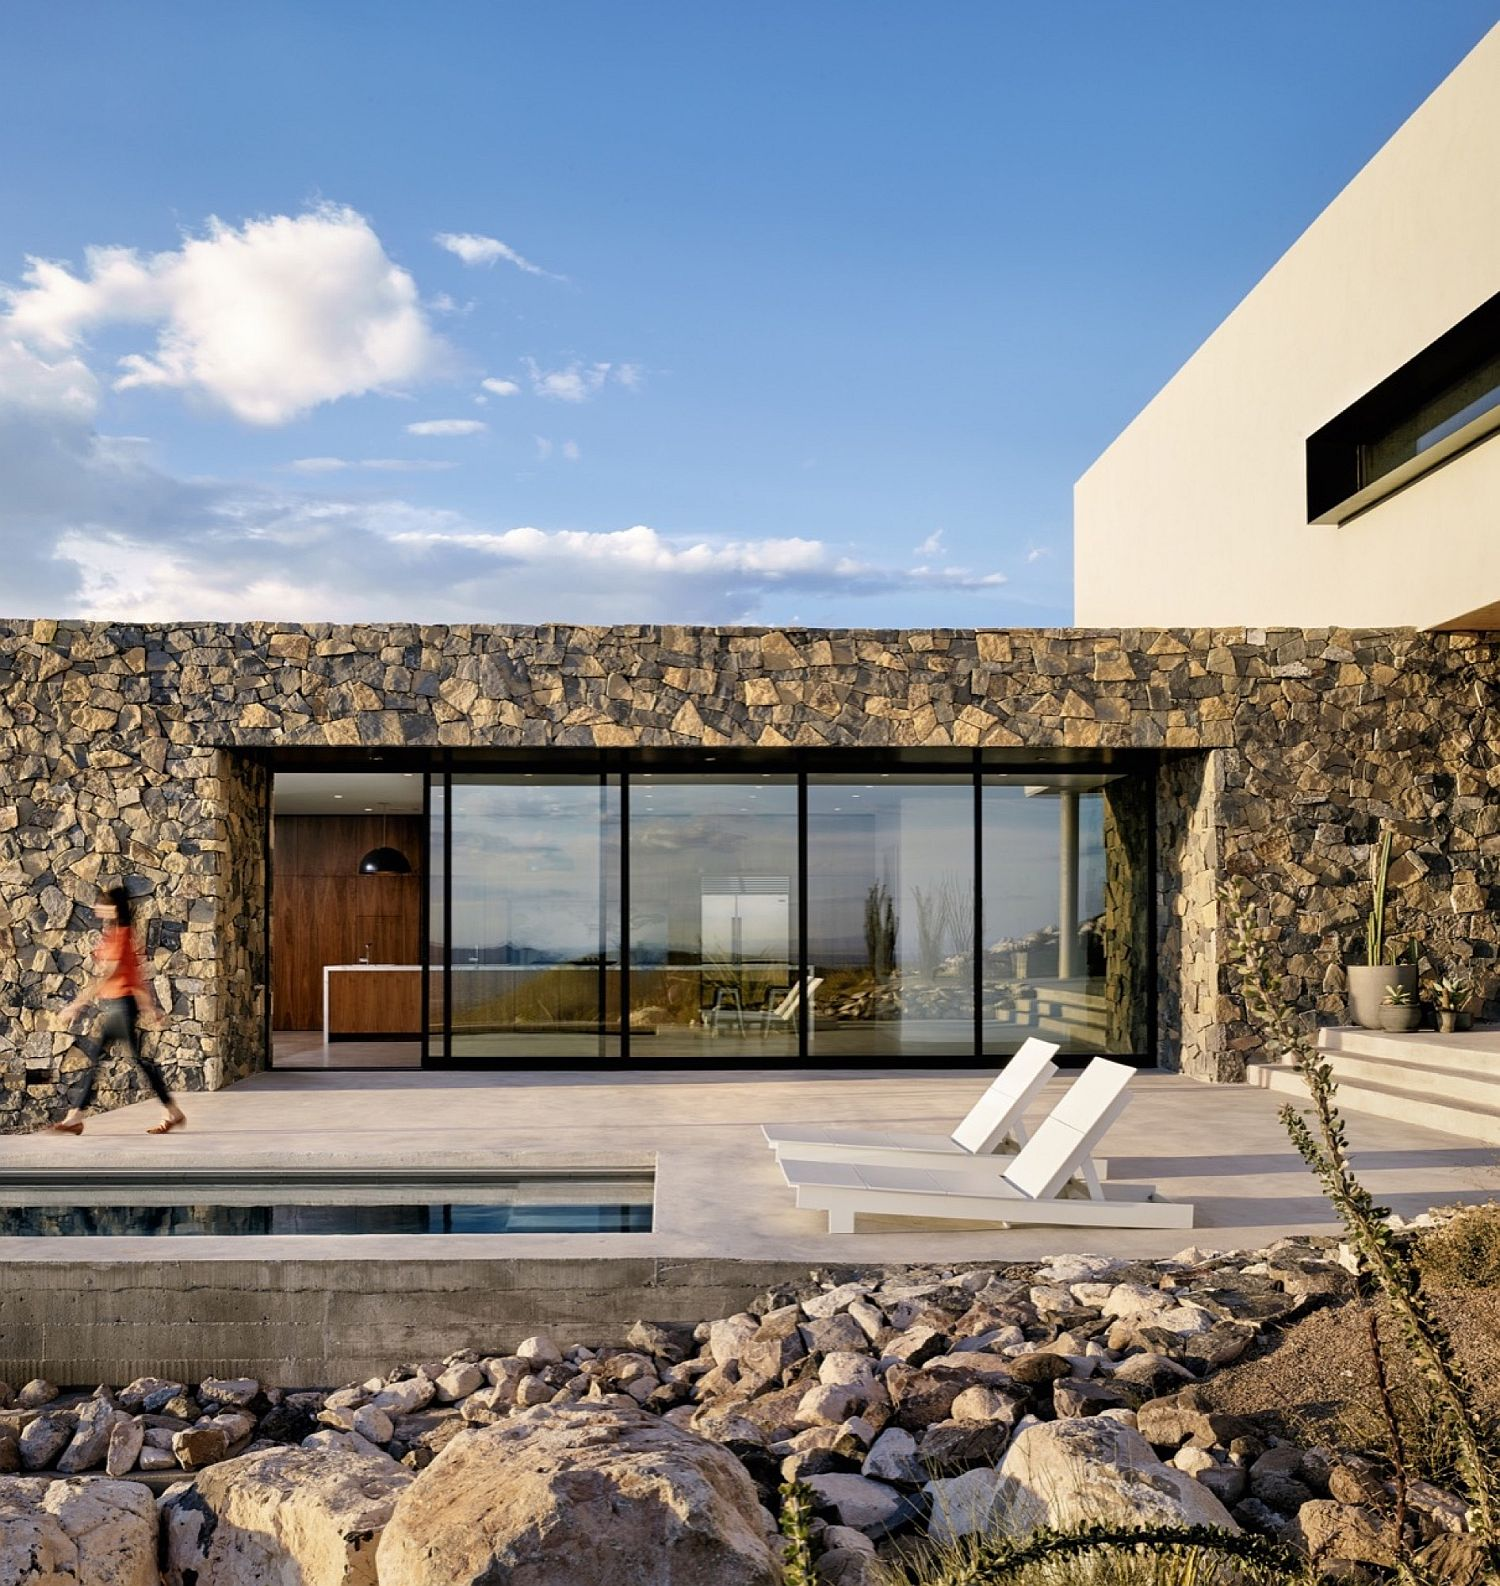 Stone exterior of the contemporary home with sliding glass walls